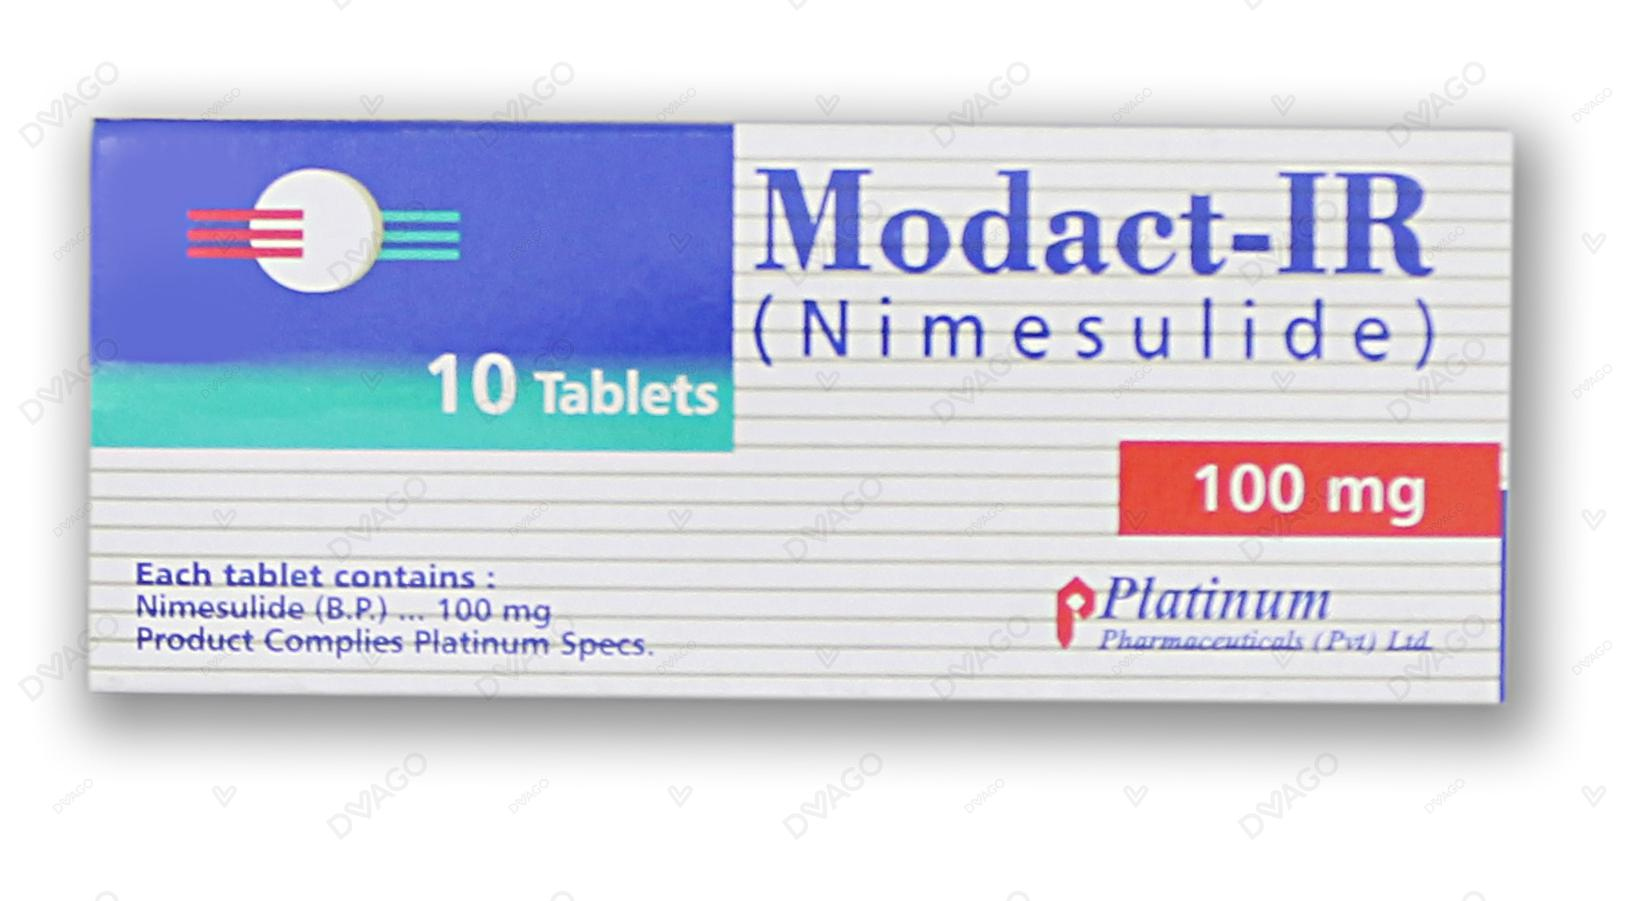 Modact-Ir Tablets 10's